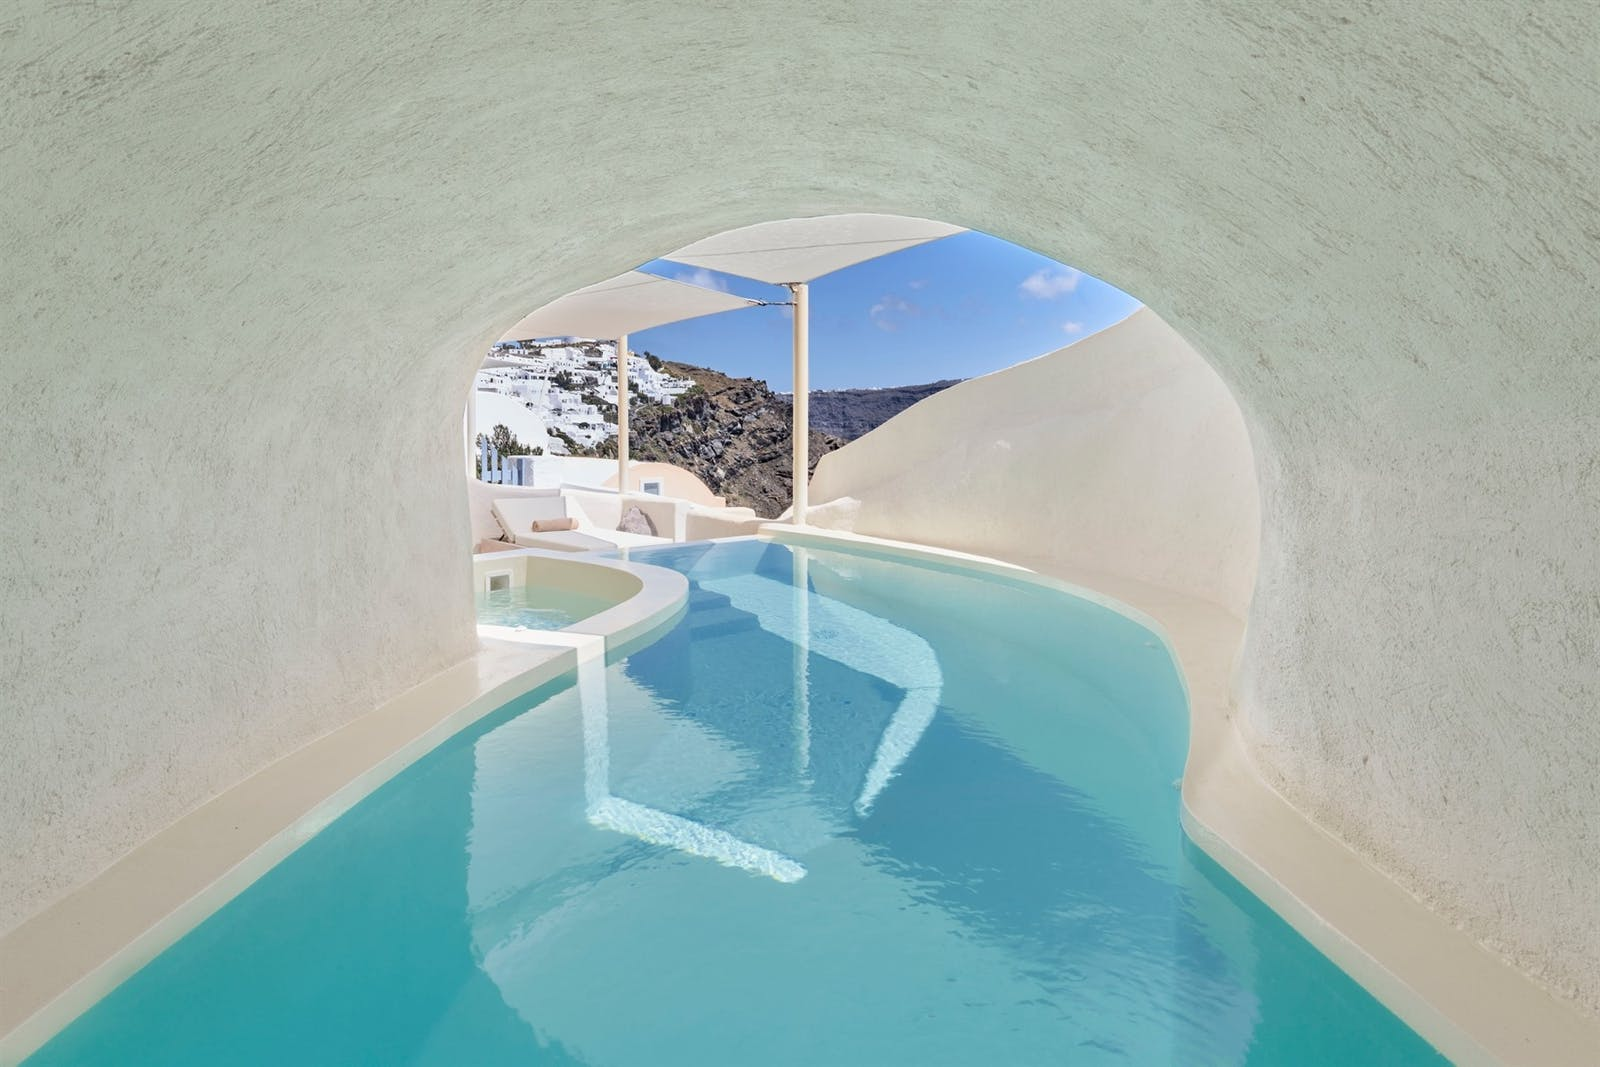 Mystery Villa Cave Pool, Mystique, Santorini, Greece